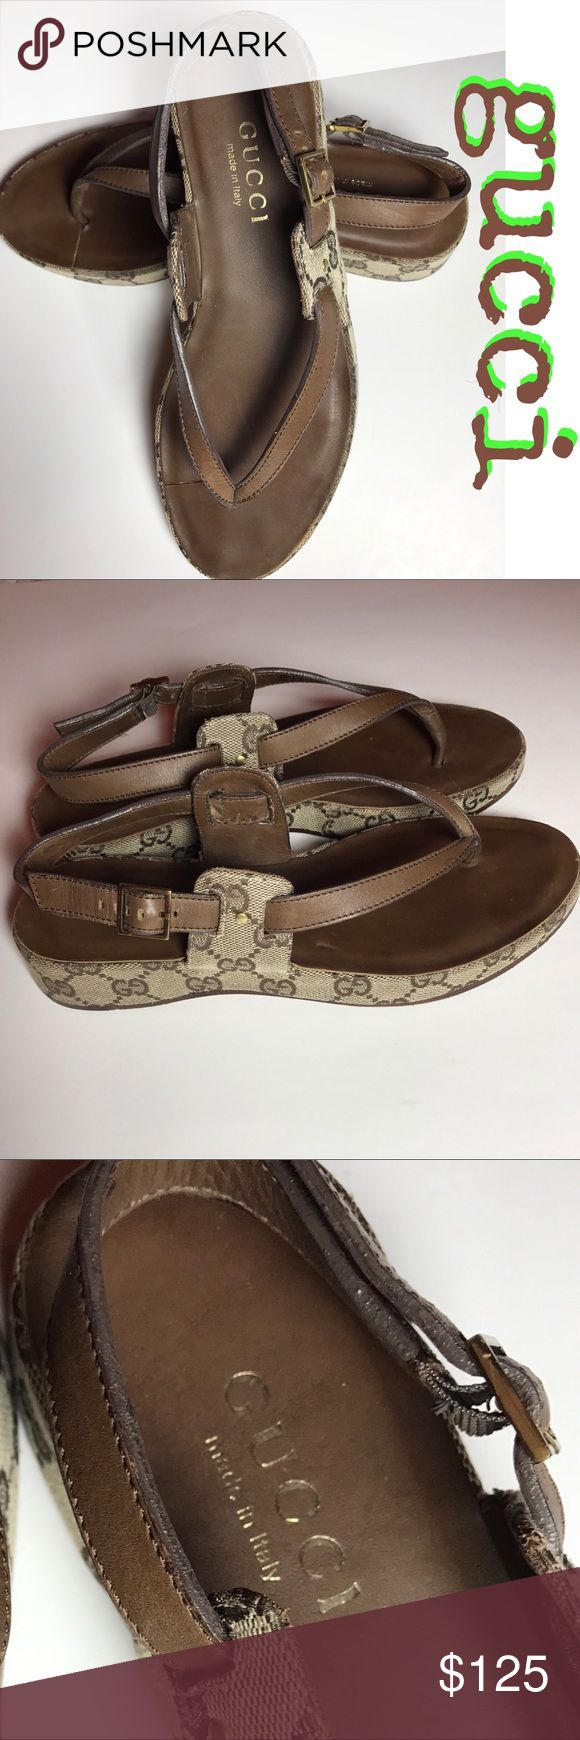 """Gucci Monogram Sandals Beautiful leather and canvas classic Gucci monogramed casual sandals.  Worn only a handful of times. Wear only shows on the soles. 1"""" platform in back tapering to .5"""" platform on from. 100% authentic PRICE FIRM Gucci Shoes Sandals"""